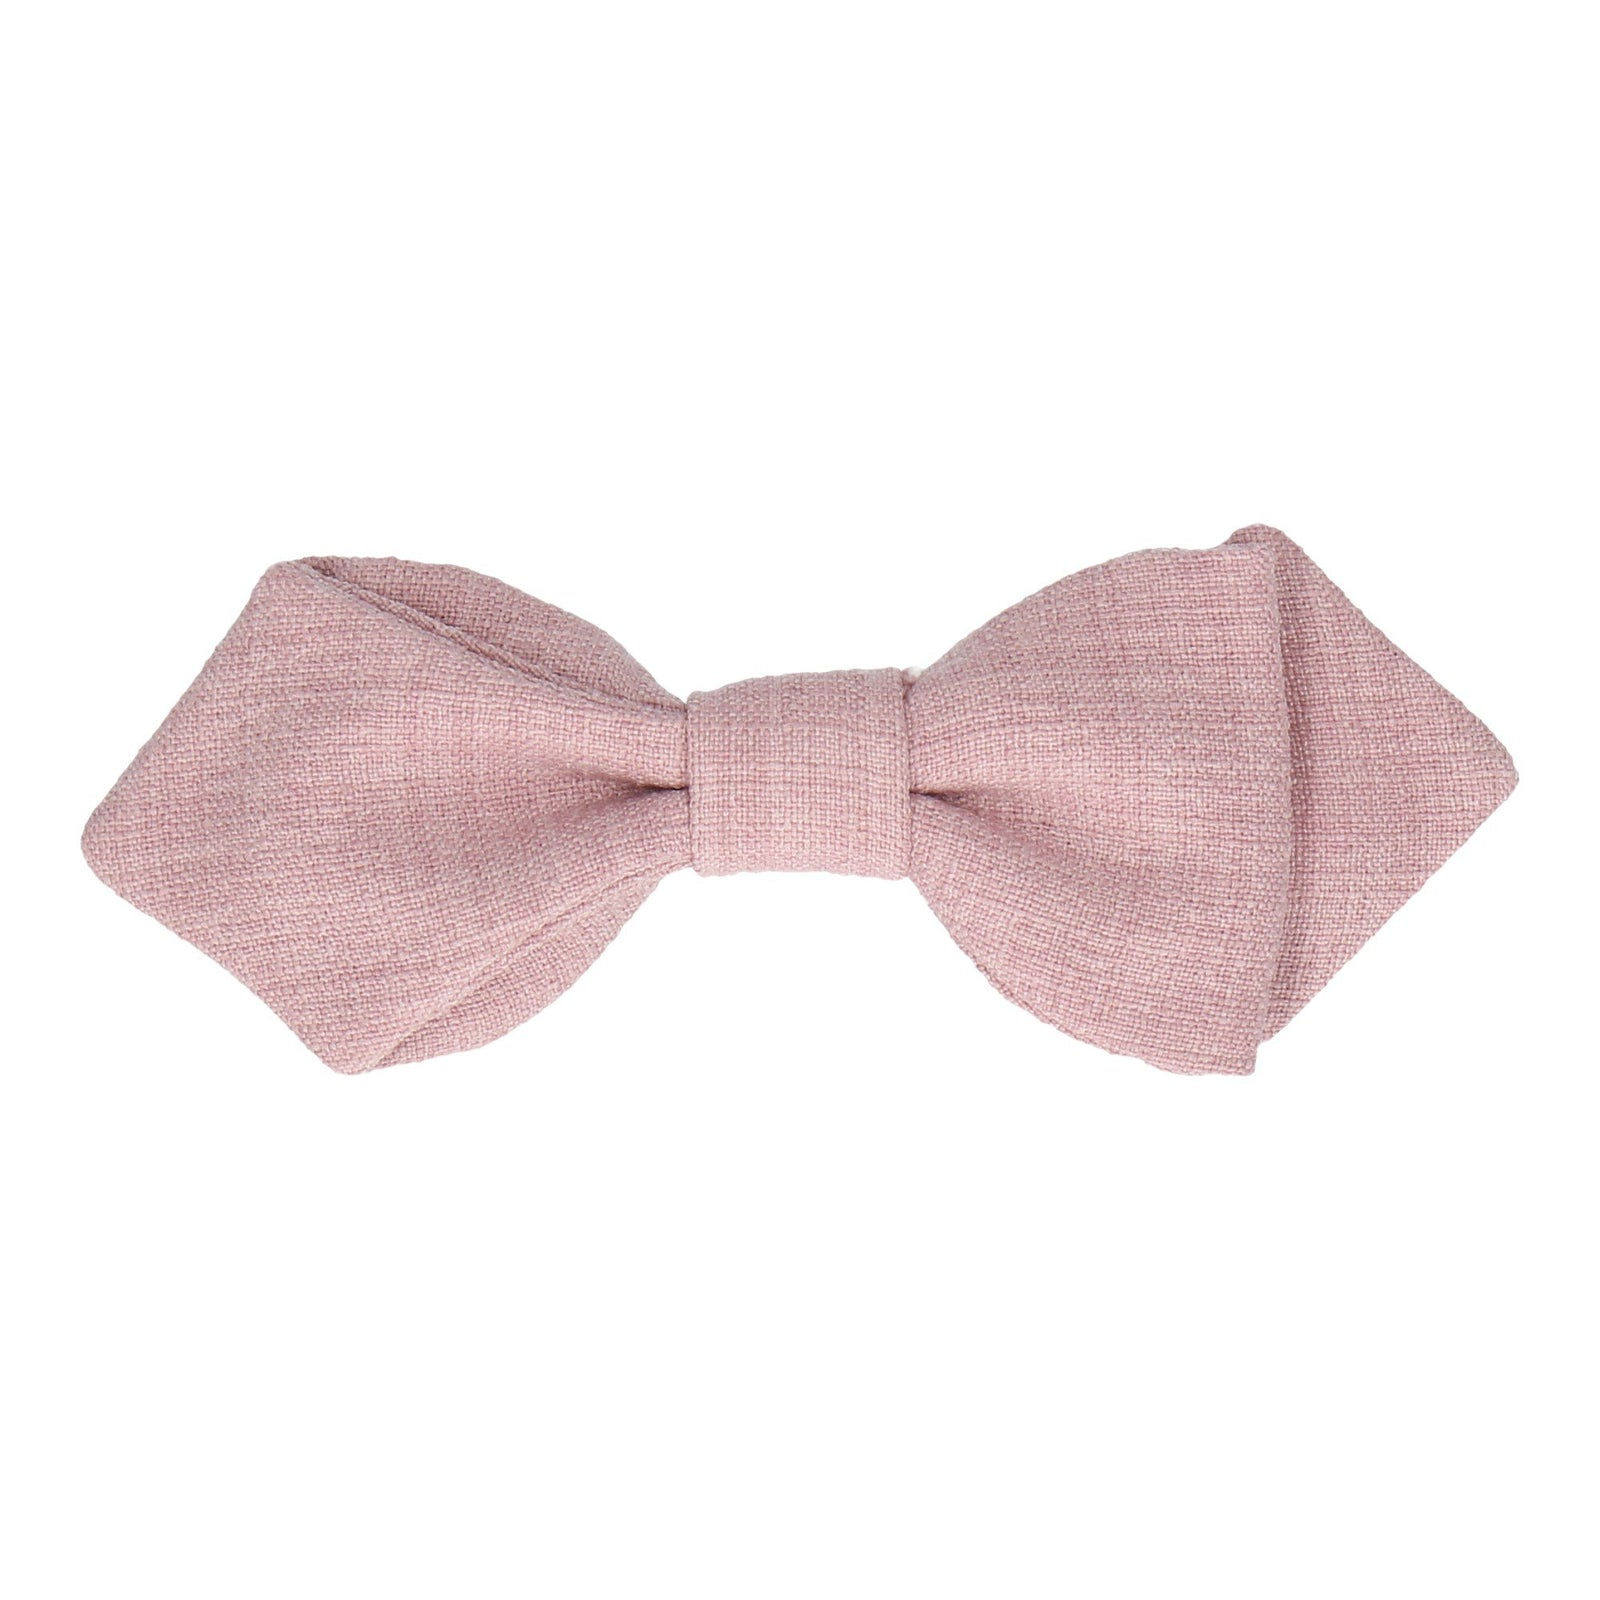 Pale Pink Textured Cotton Linen Bow Tie